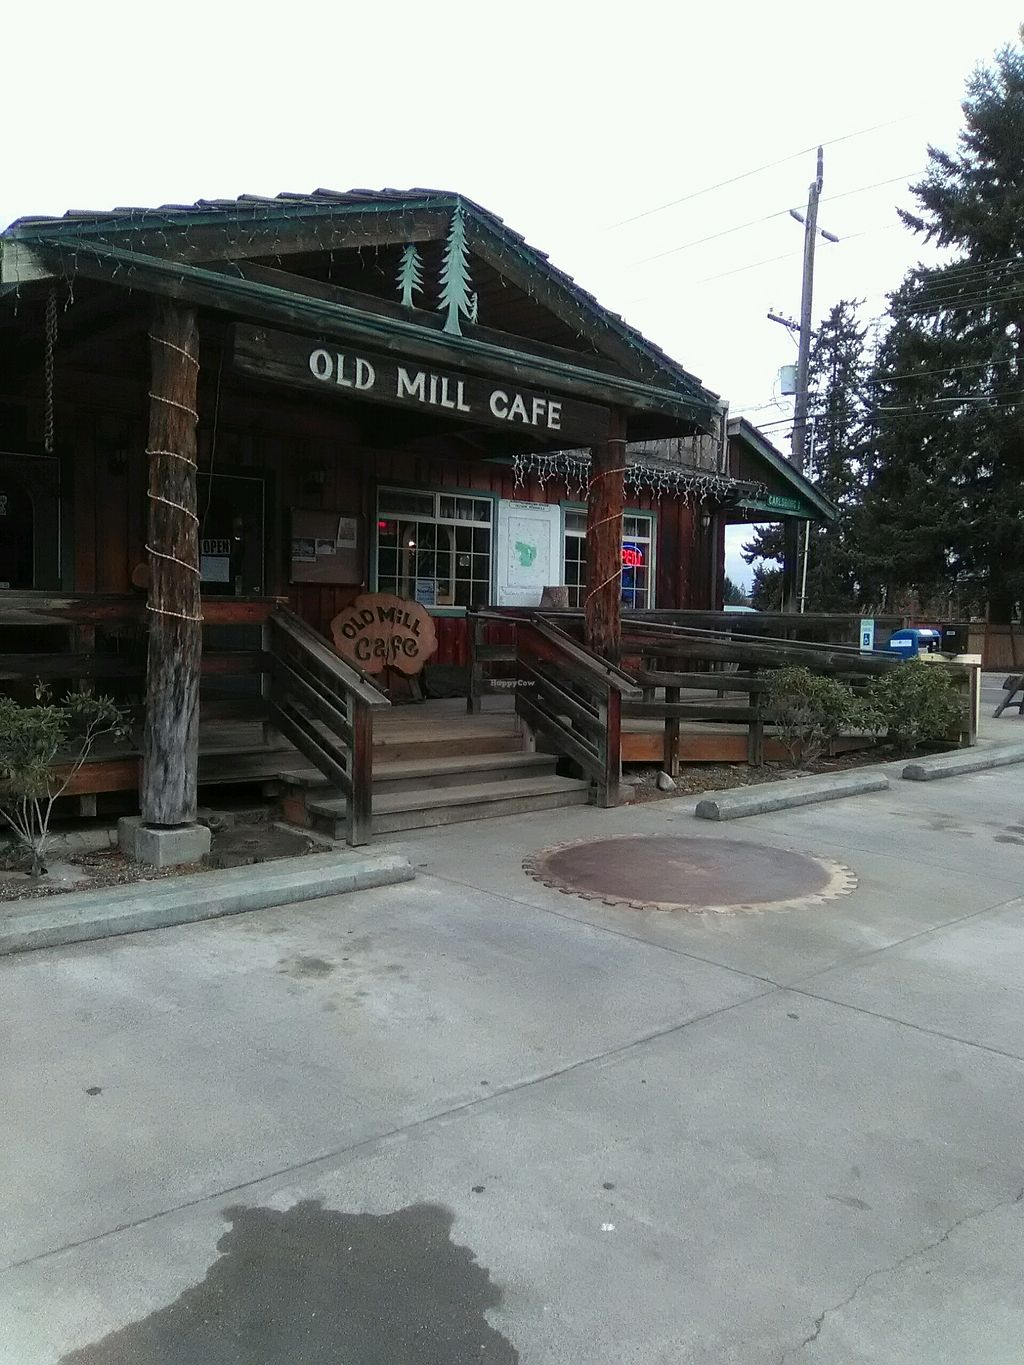 """Photo of The Old Mill Cafe  by <a href=""""/members/profile/Valhaclaw"""">Valhaclaw</a> <br/>Beware! Very high priced bean burgers serviced here <br/> November 15, 2017  - <a href='/contact/abuse/image/62422/325839'>Report</a>"""